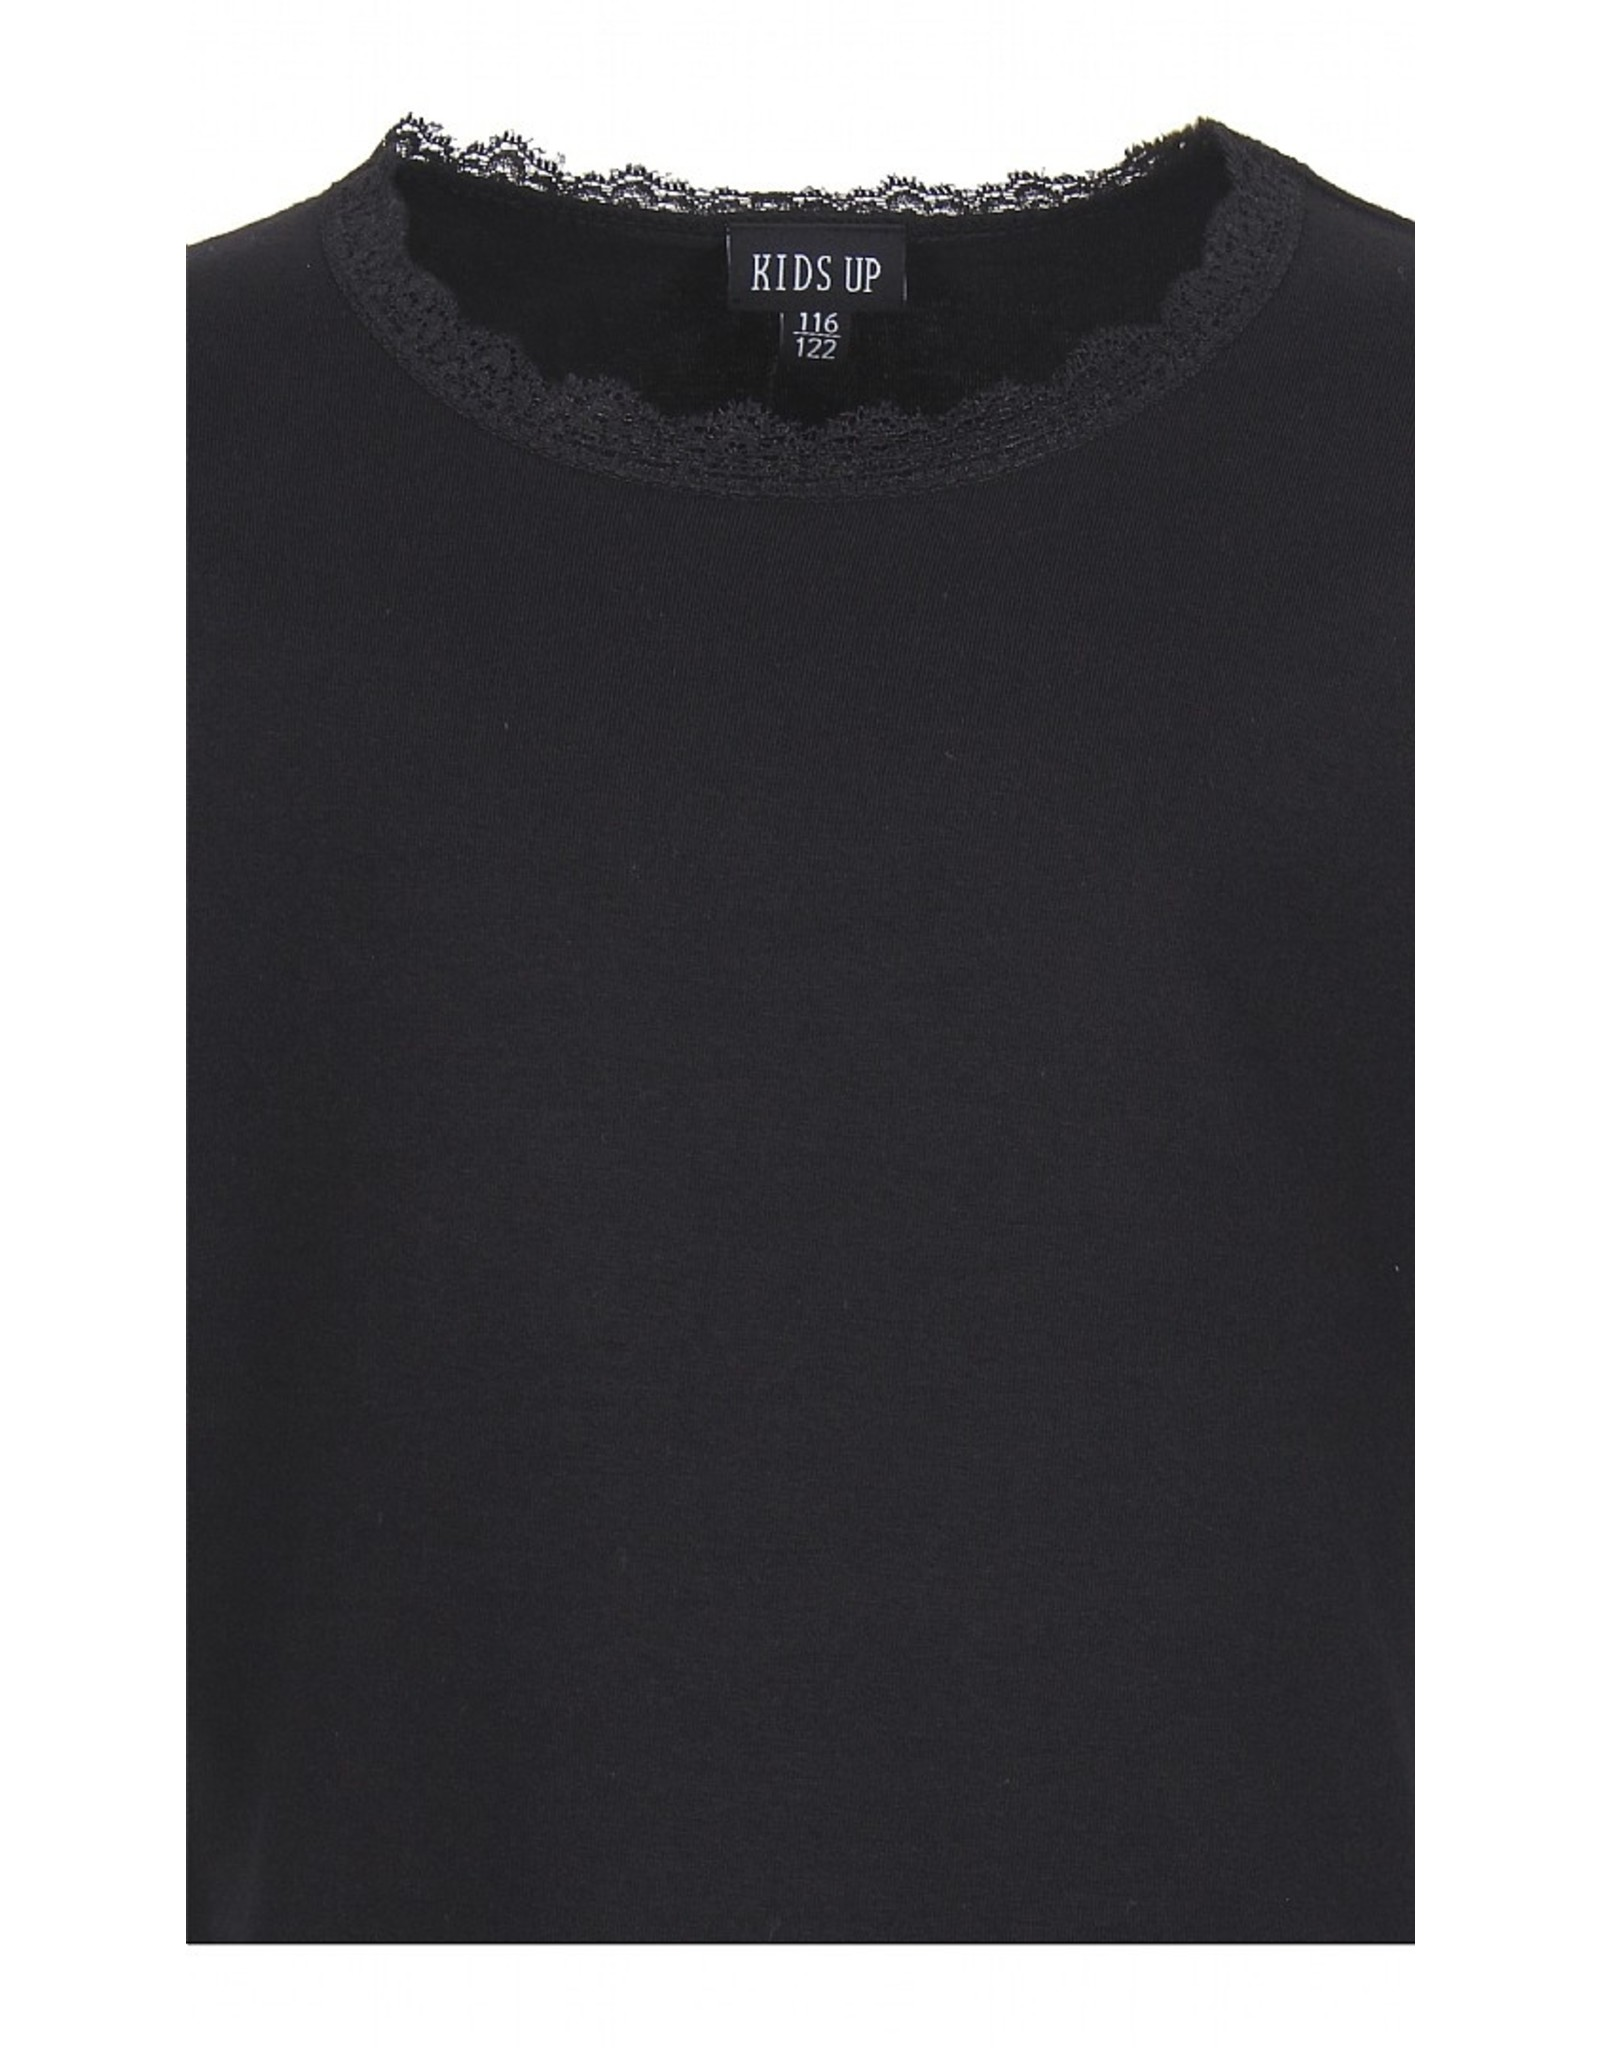 KIDS UP Kids-Up- T-Shirt S/S- Black